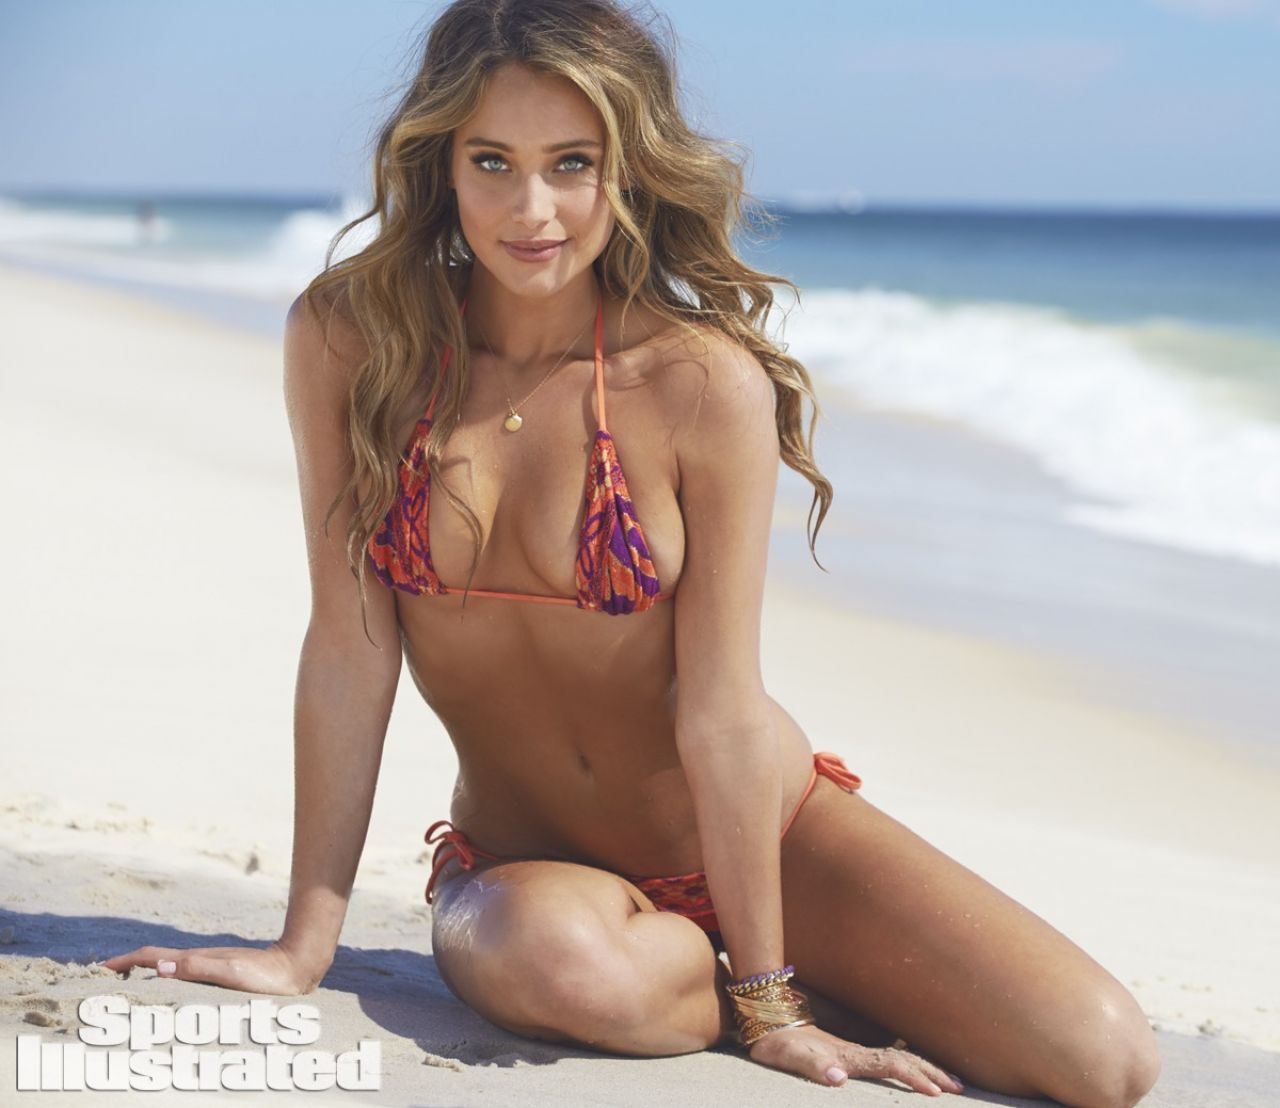 Eldo Kim Bomb Threat Harvard n 4469115 additionally Hannah Davis Sports Illustrated 2014 Swimsuit Issue Part 2 64523 as well 2 together with Joseph Birlem together with 146599 Bonazzi Twister 40. on oscar brown jr youtube